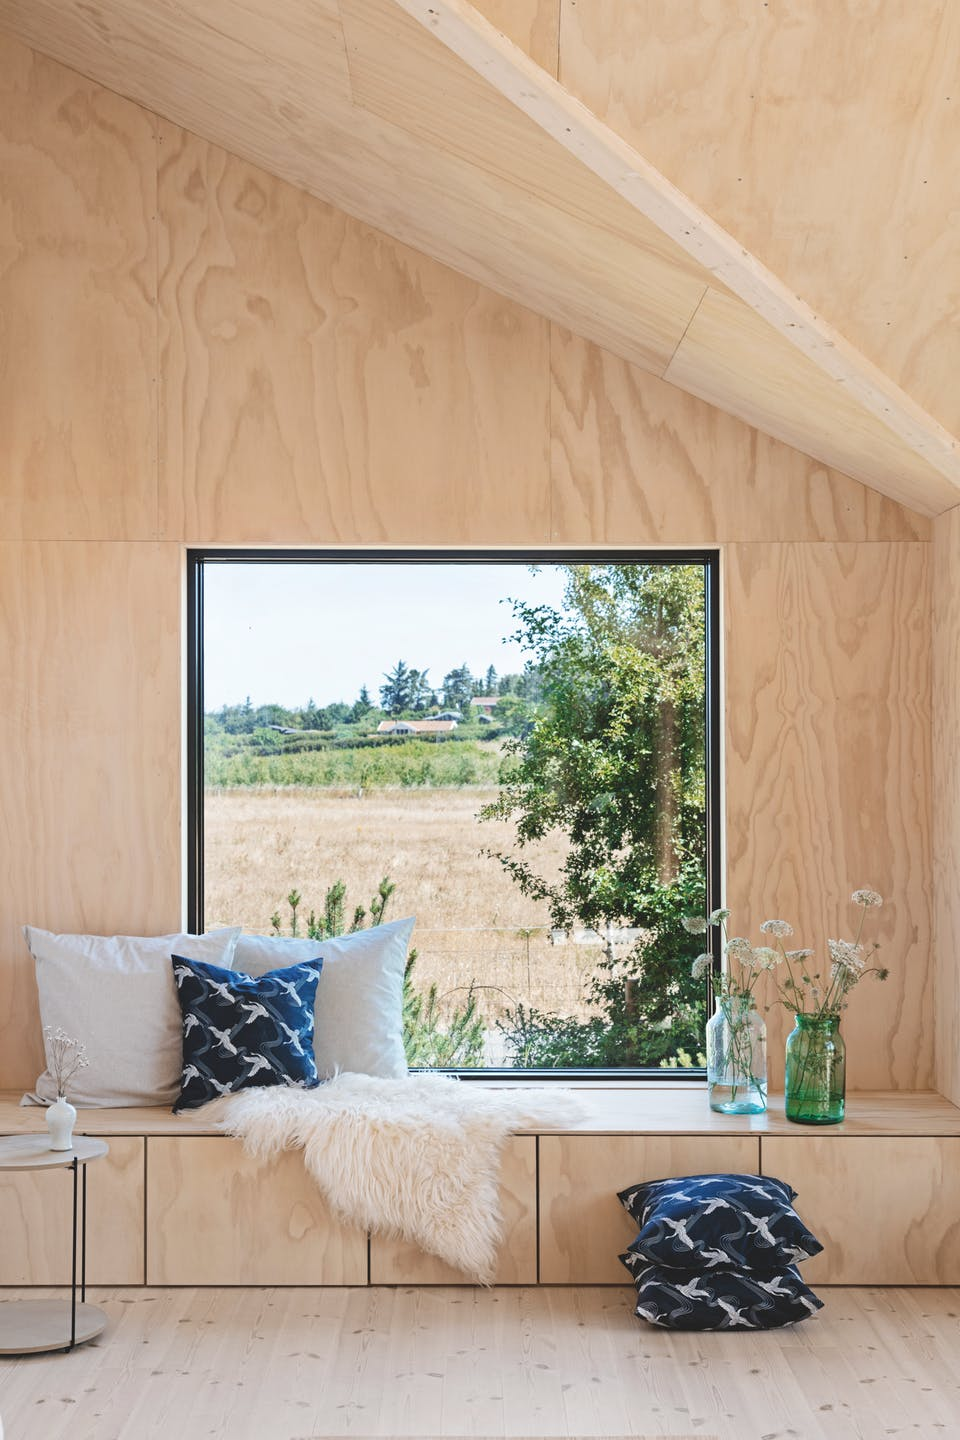 The Nordroom - A Wooden Summerhouse With Views Over The Danish Countryside